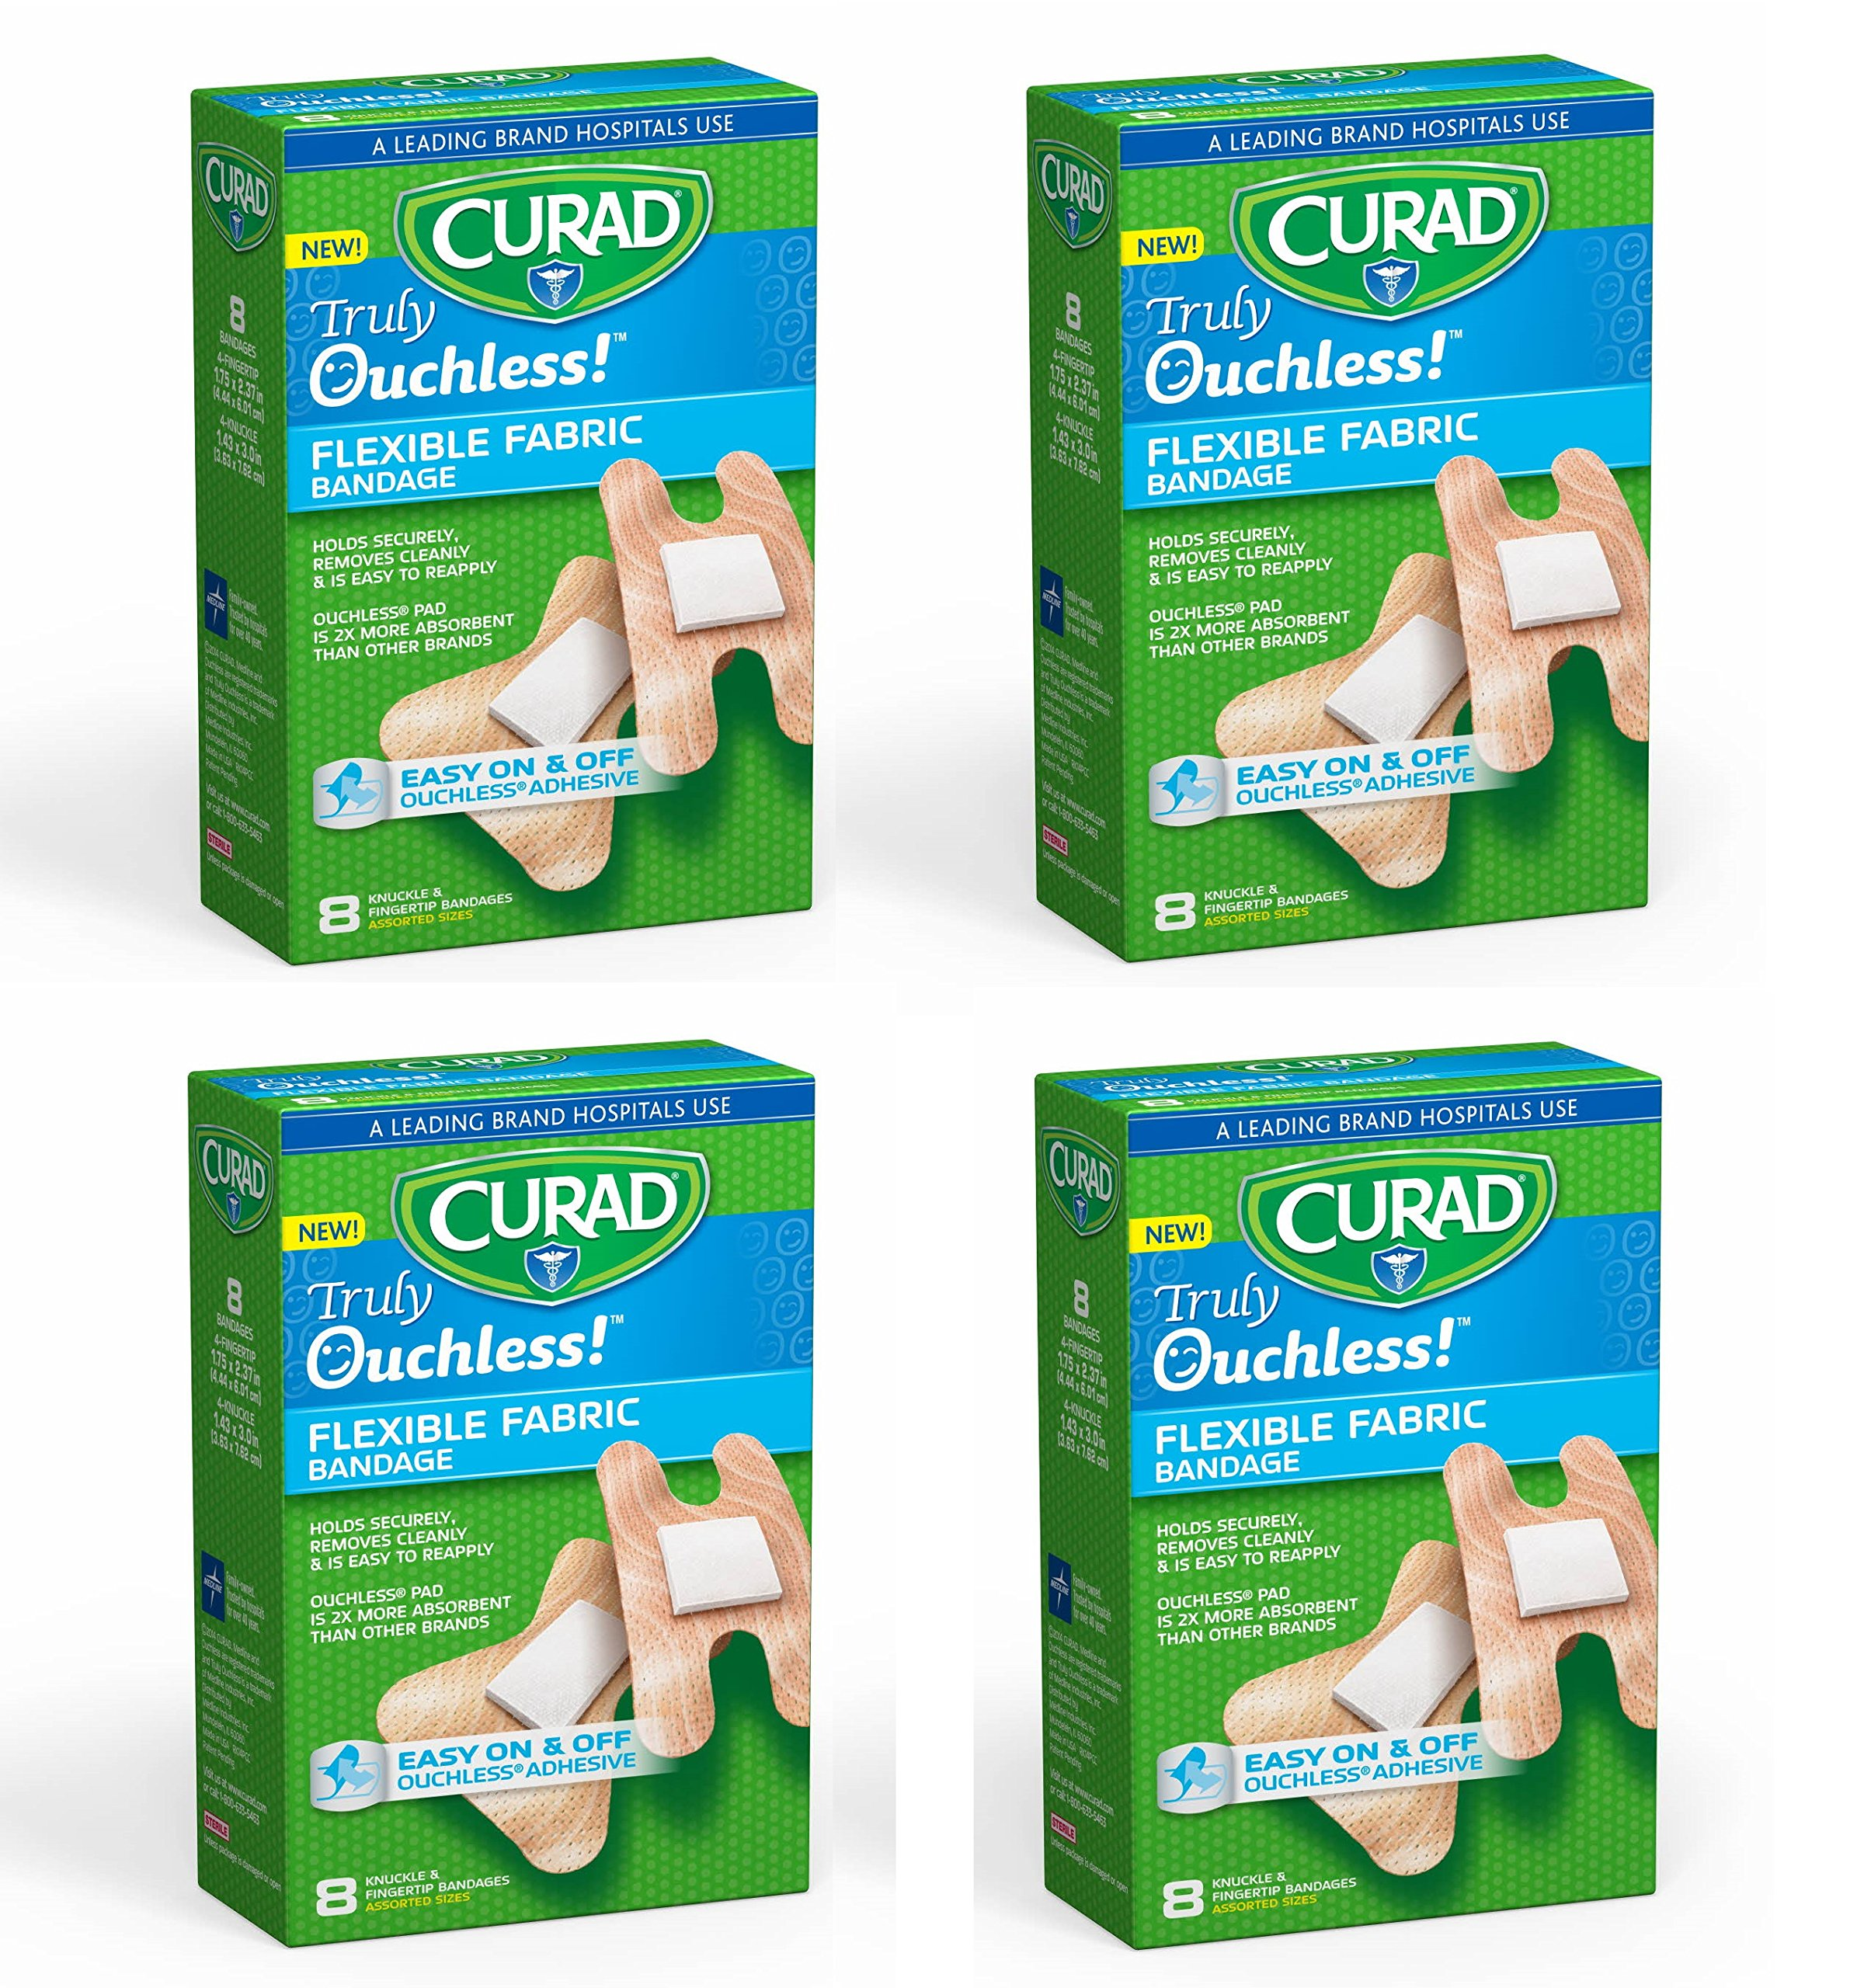 Curad Ouchless Flexible Fabric Knuckle and Fingertip Bandages, 8 ct (Pack of 4) + FREE Old Spice Deadlock Spiking Glue, Travel Size, .84 Oz